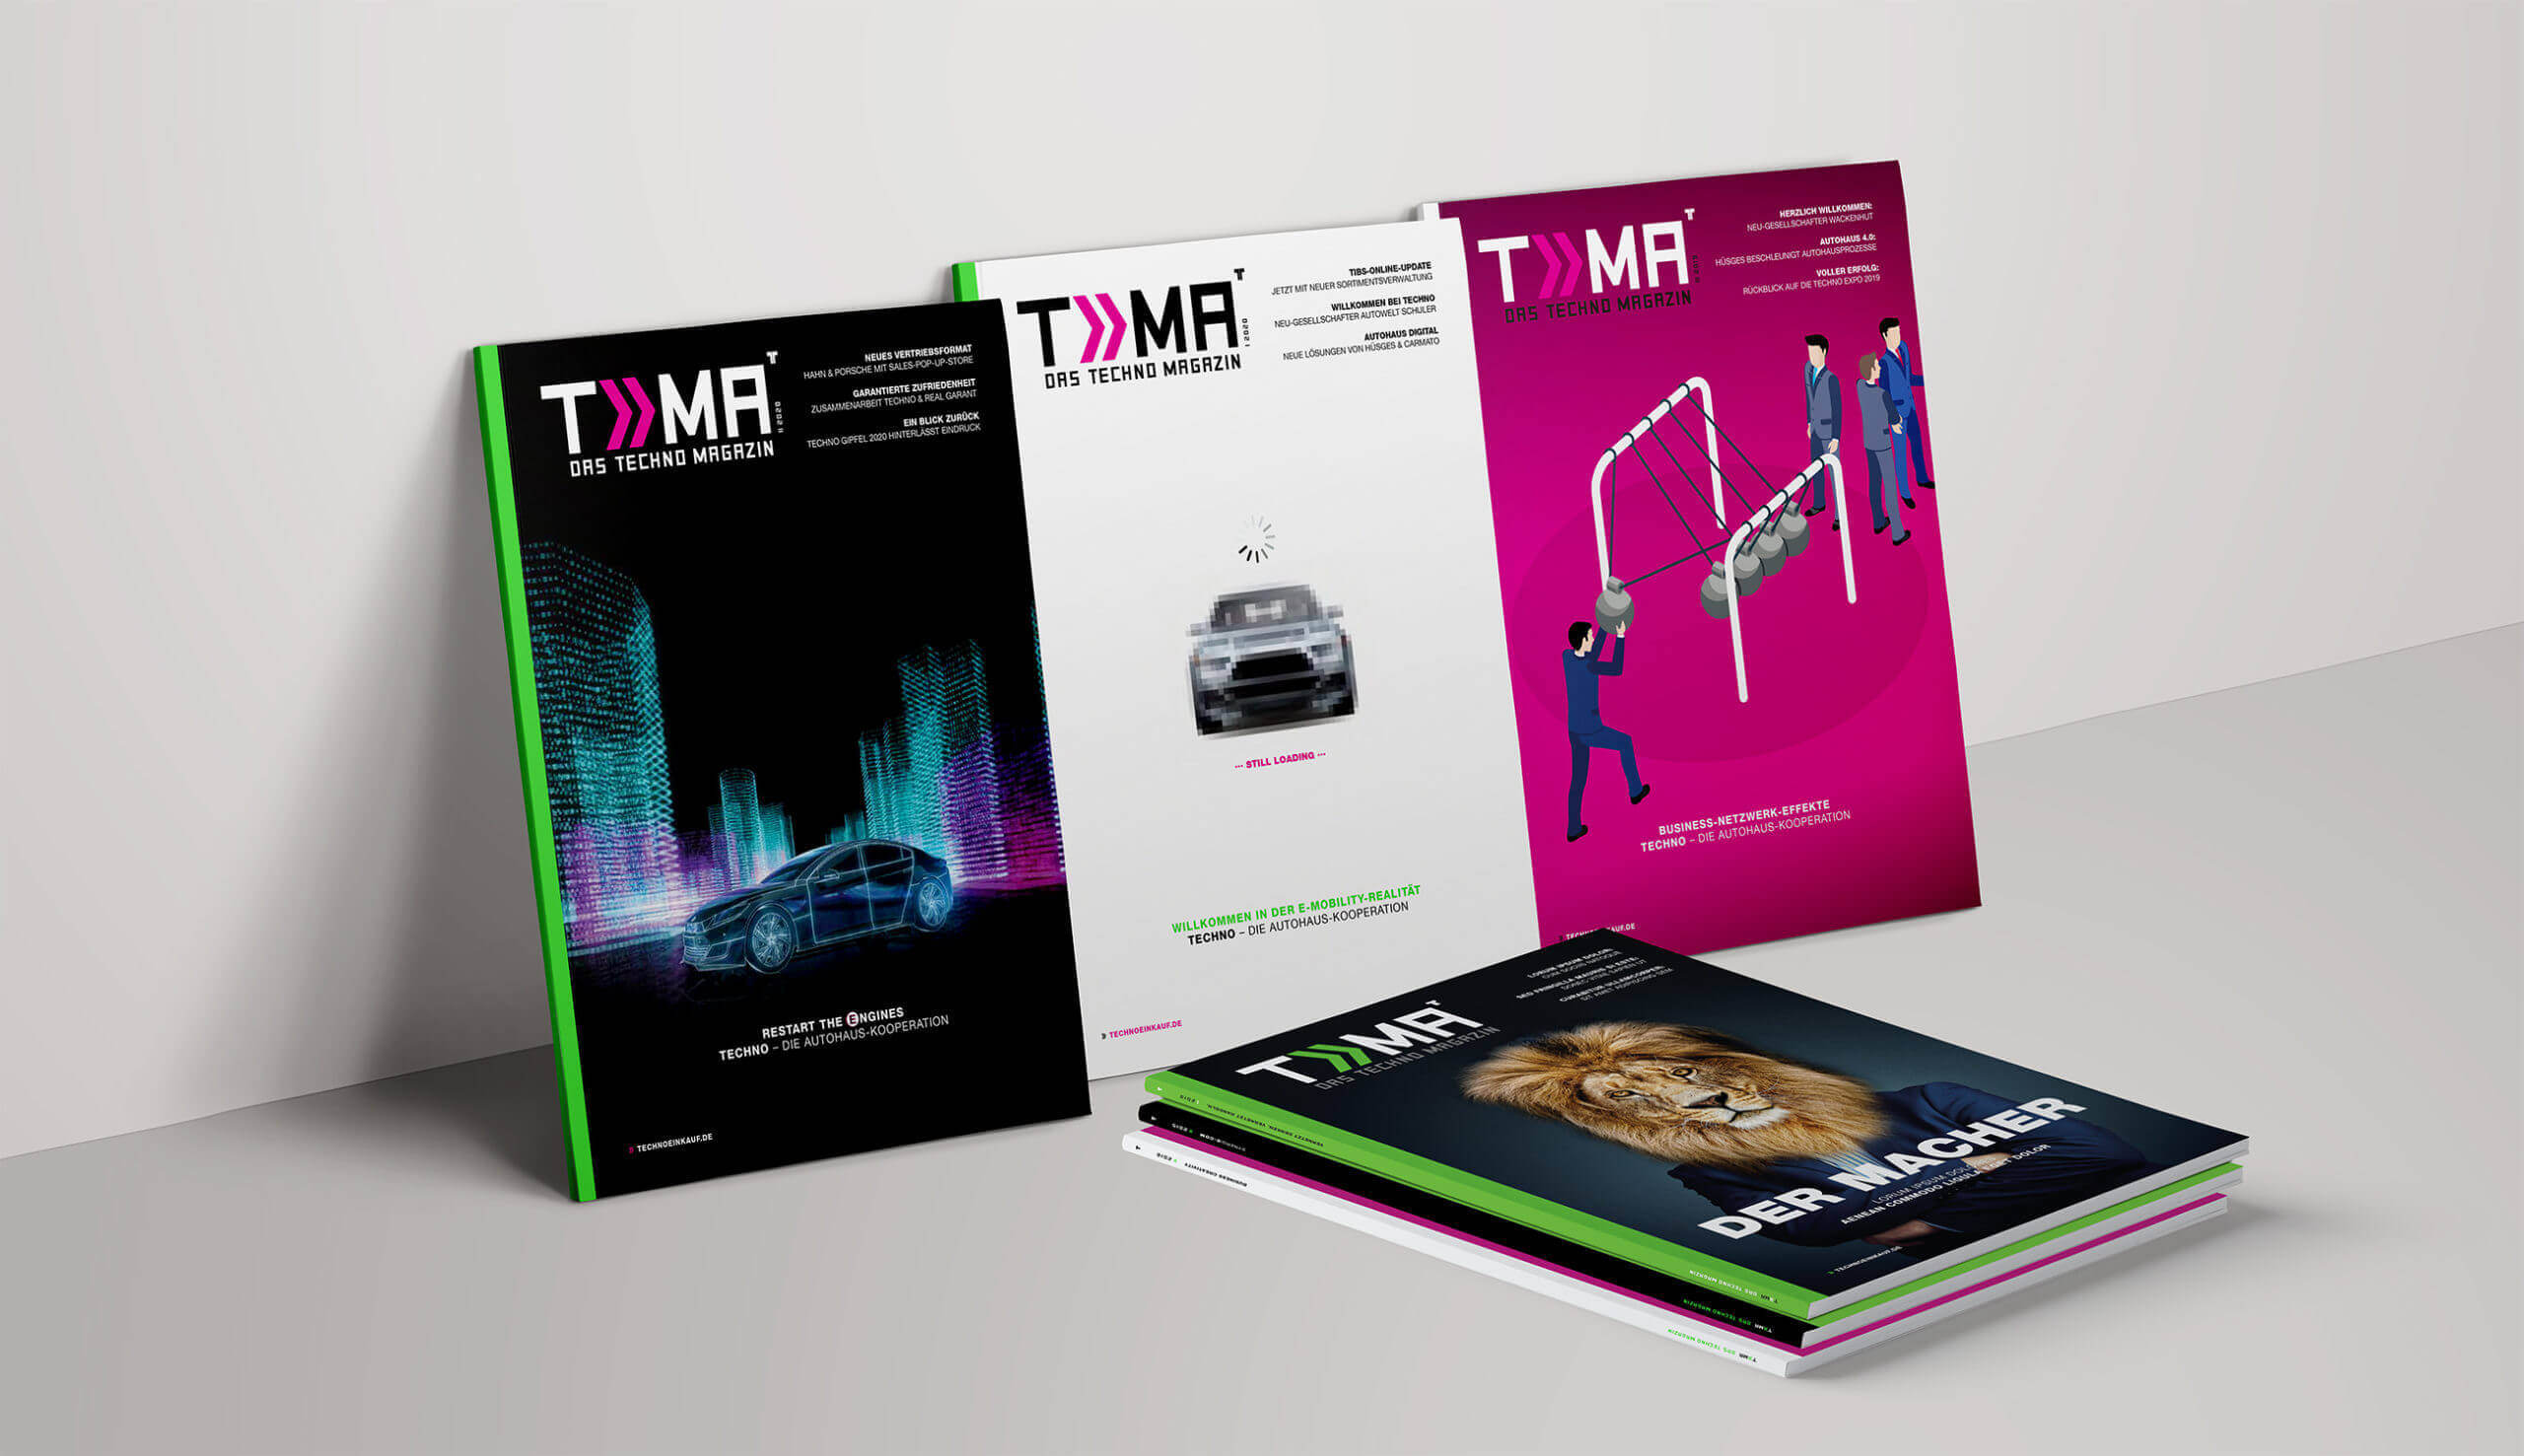 TECHNO Magazin T»MA